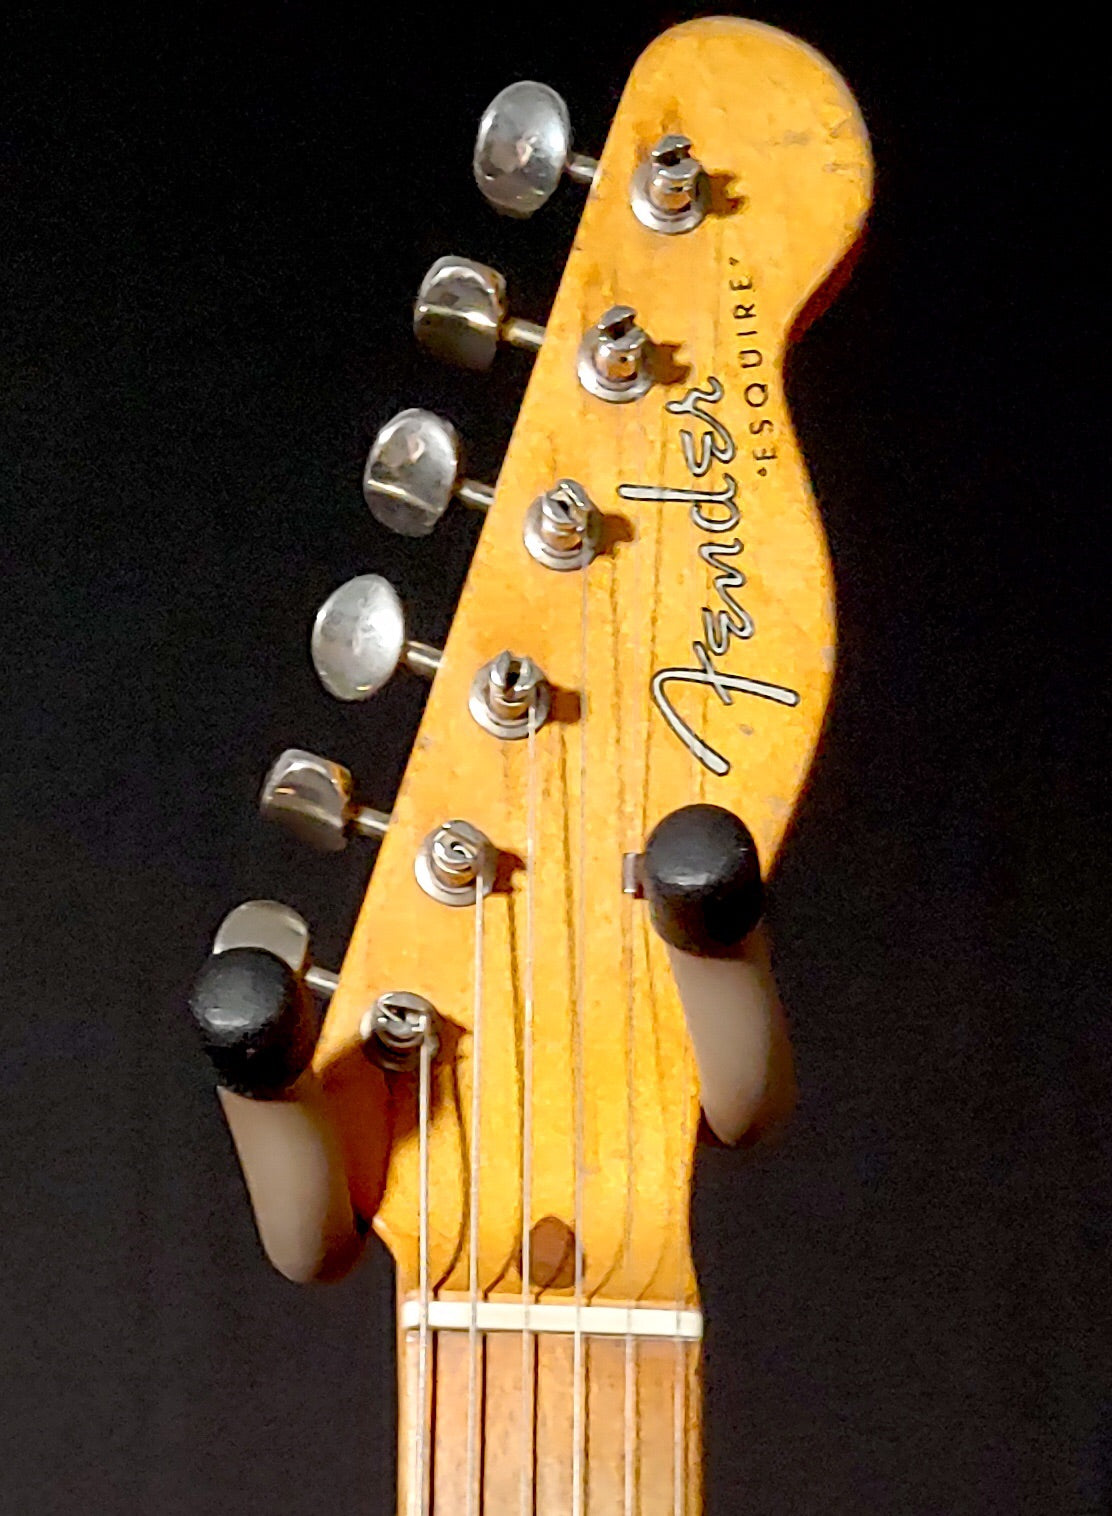 **** SOLD **** 1959 Fender Esquire